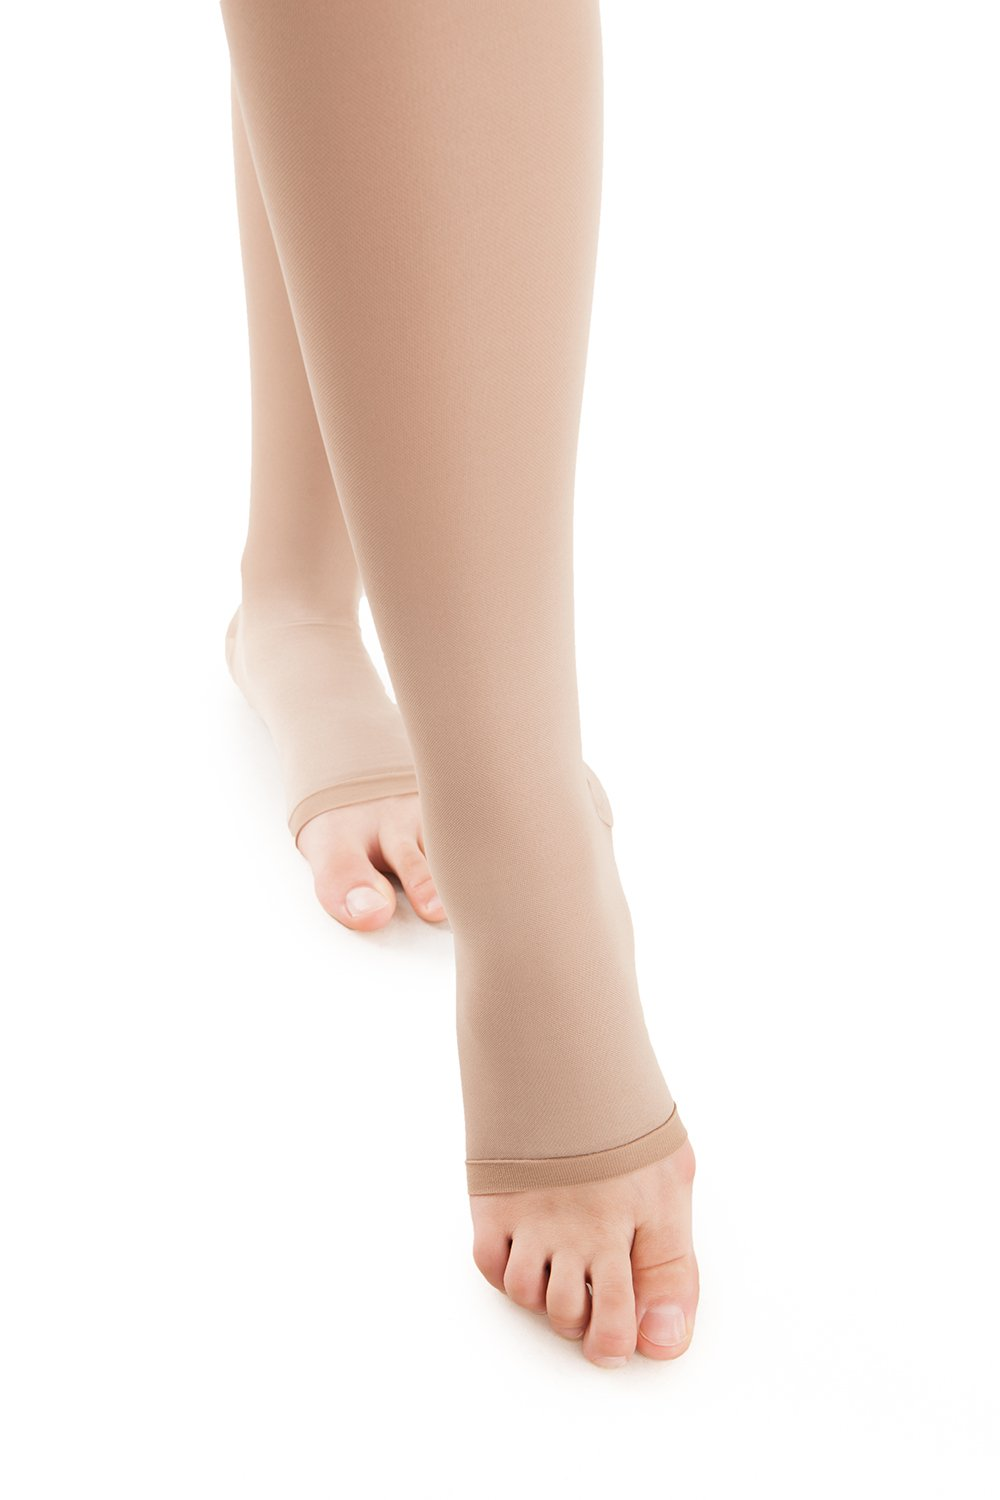 Microfiber Open Toe Thigh Highs - Graduated Strong Compression - 25 to 35 mmHG (H-306(O)) - Gabrialla